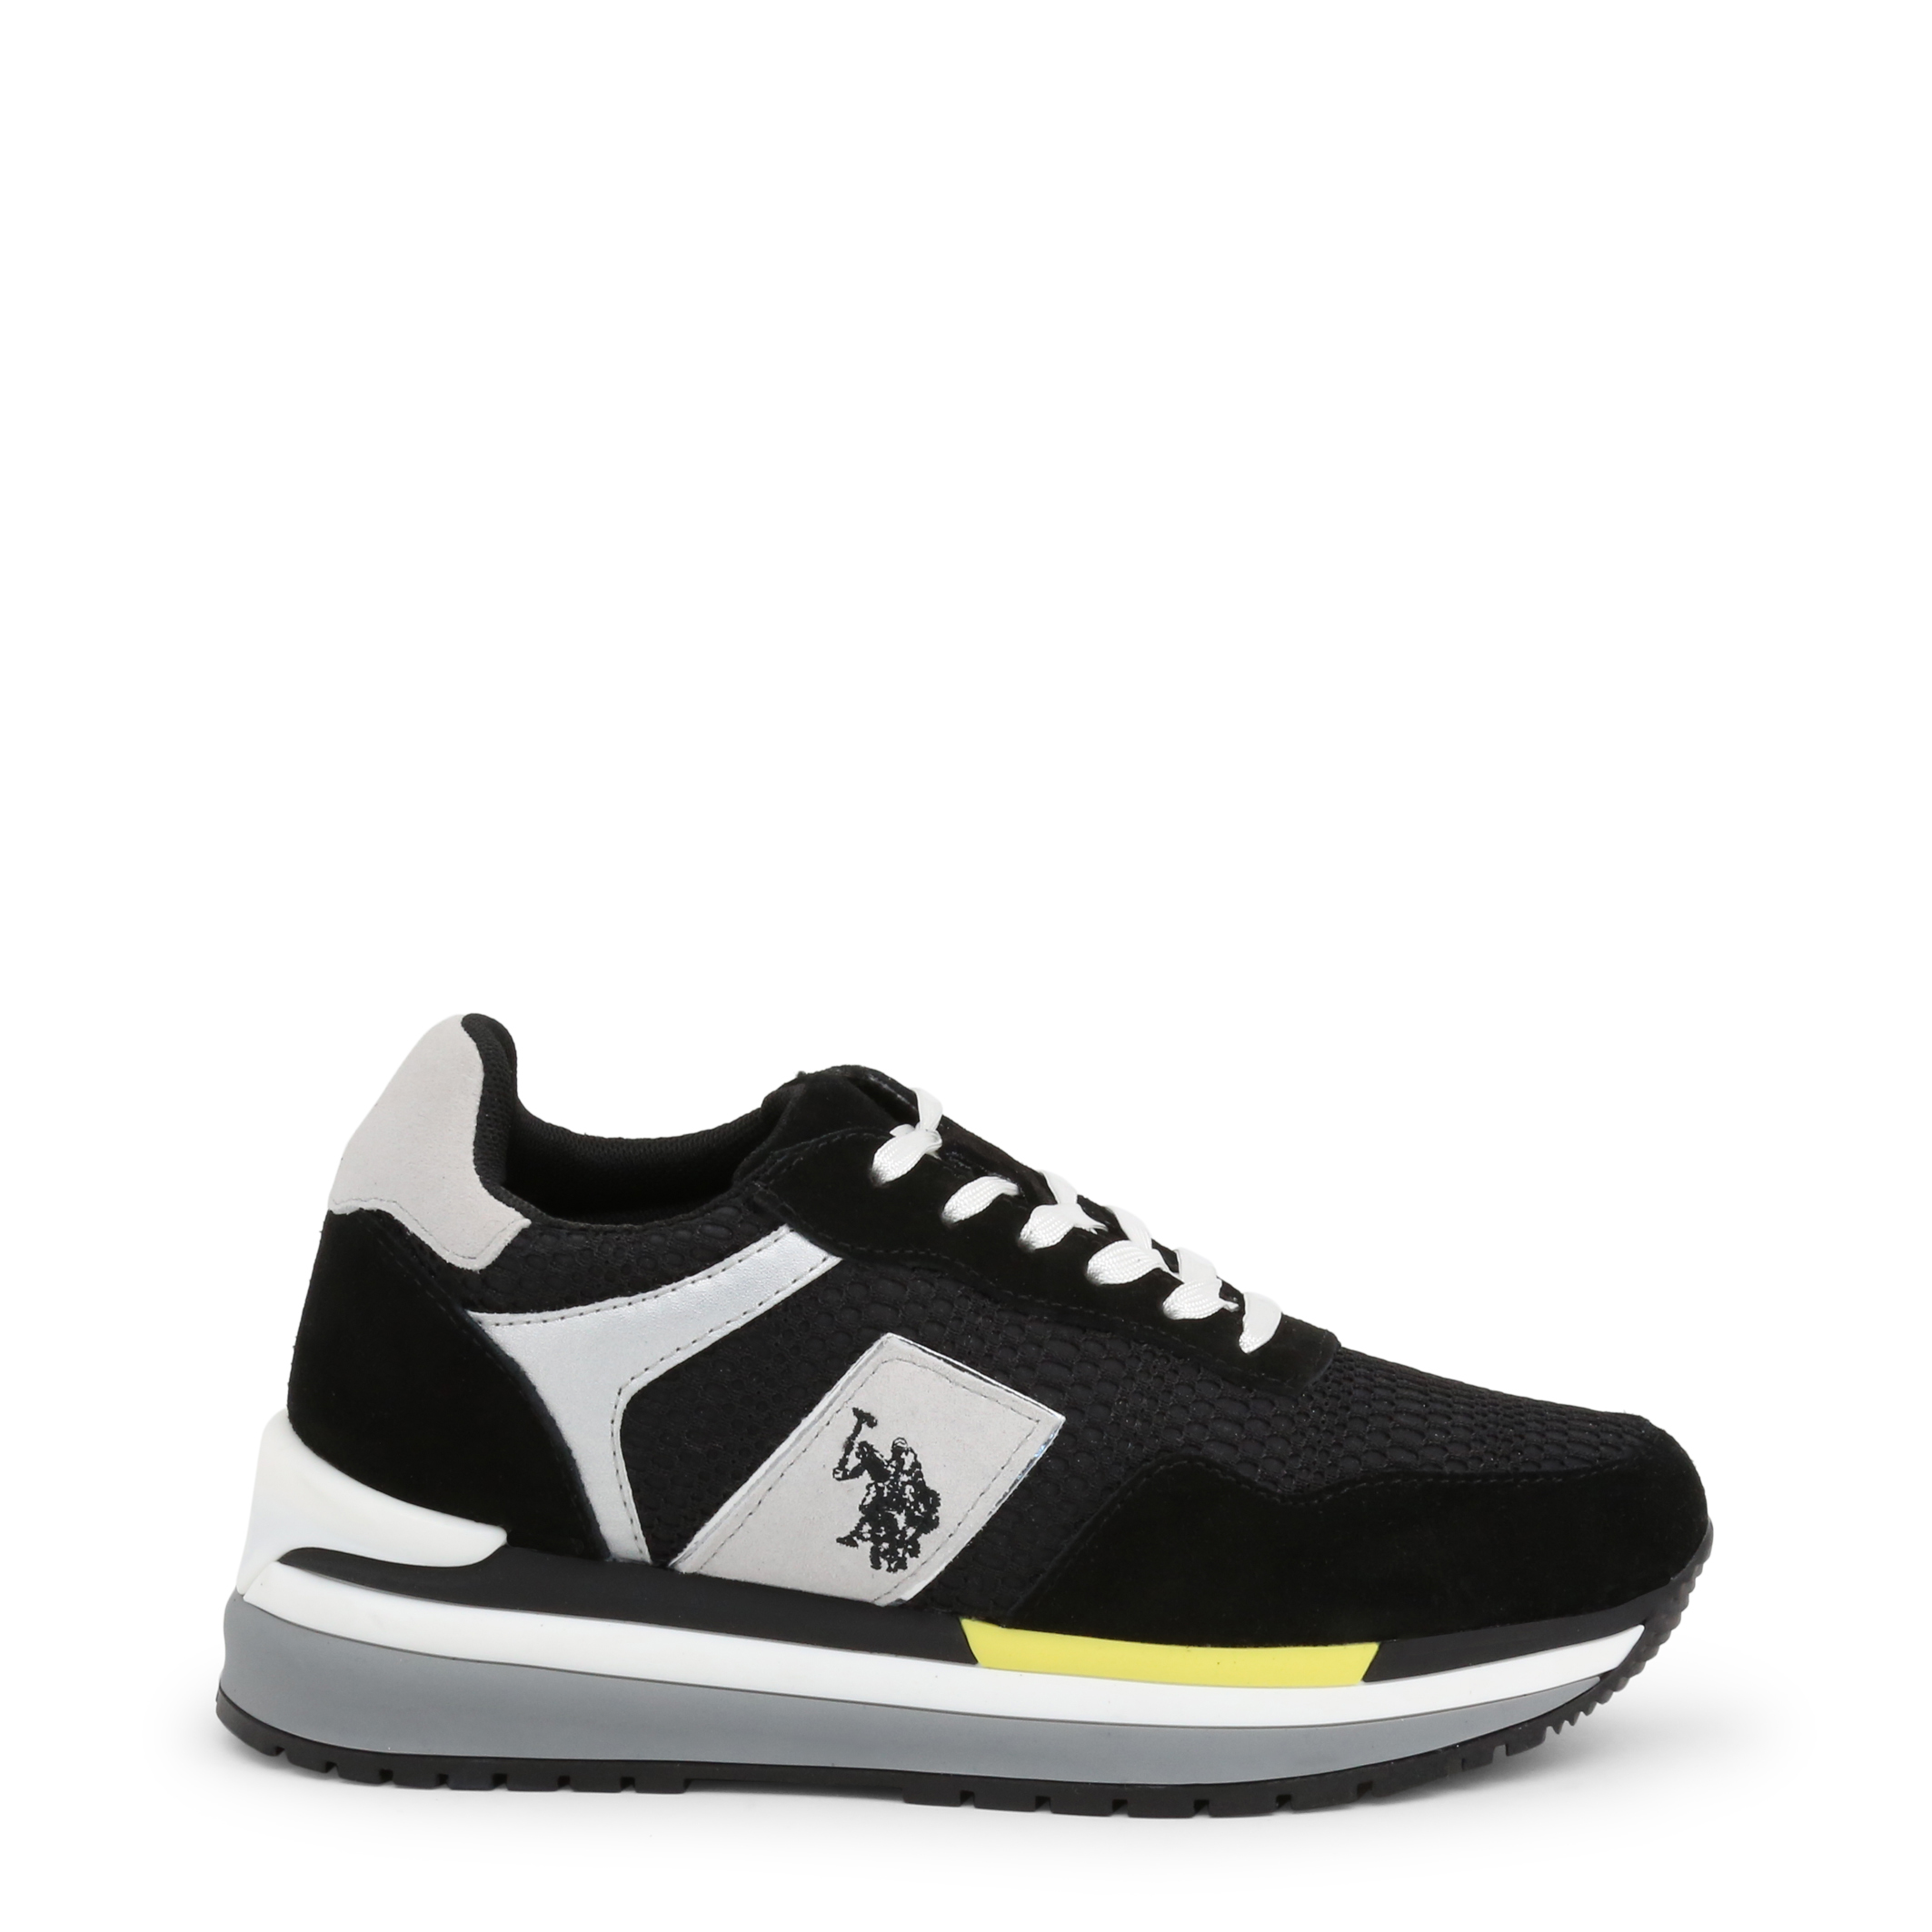 Baskets / Sneakers  U.S. Polo Assn. CHER4195S0_MS1_BLK-WHI black